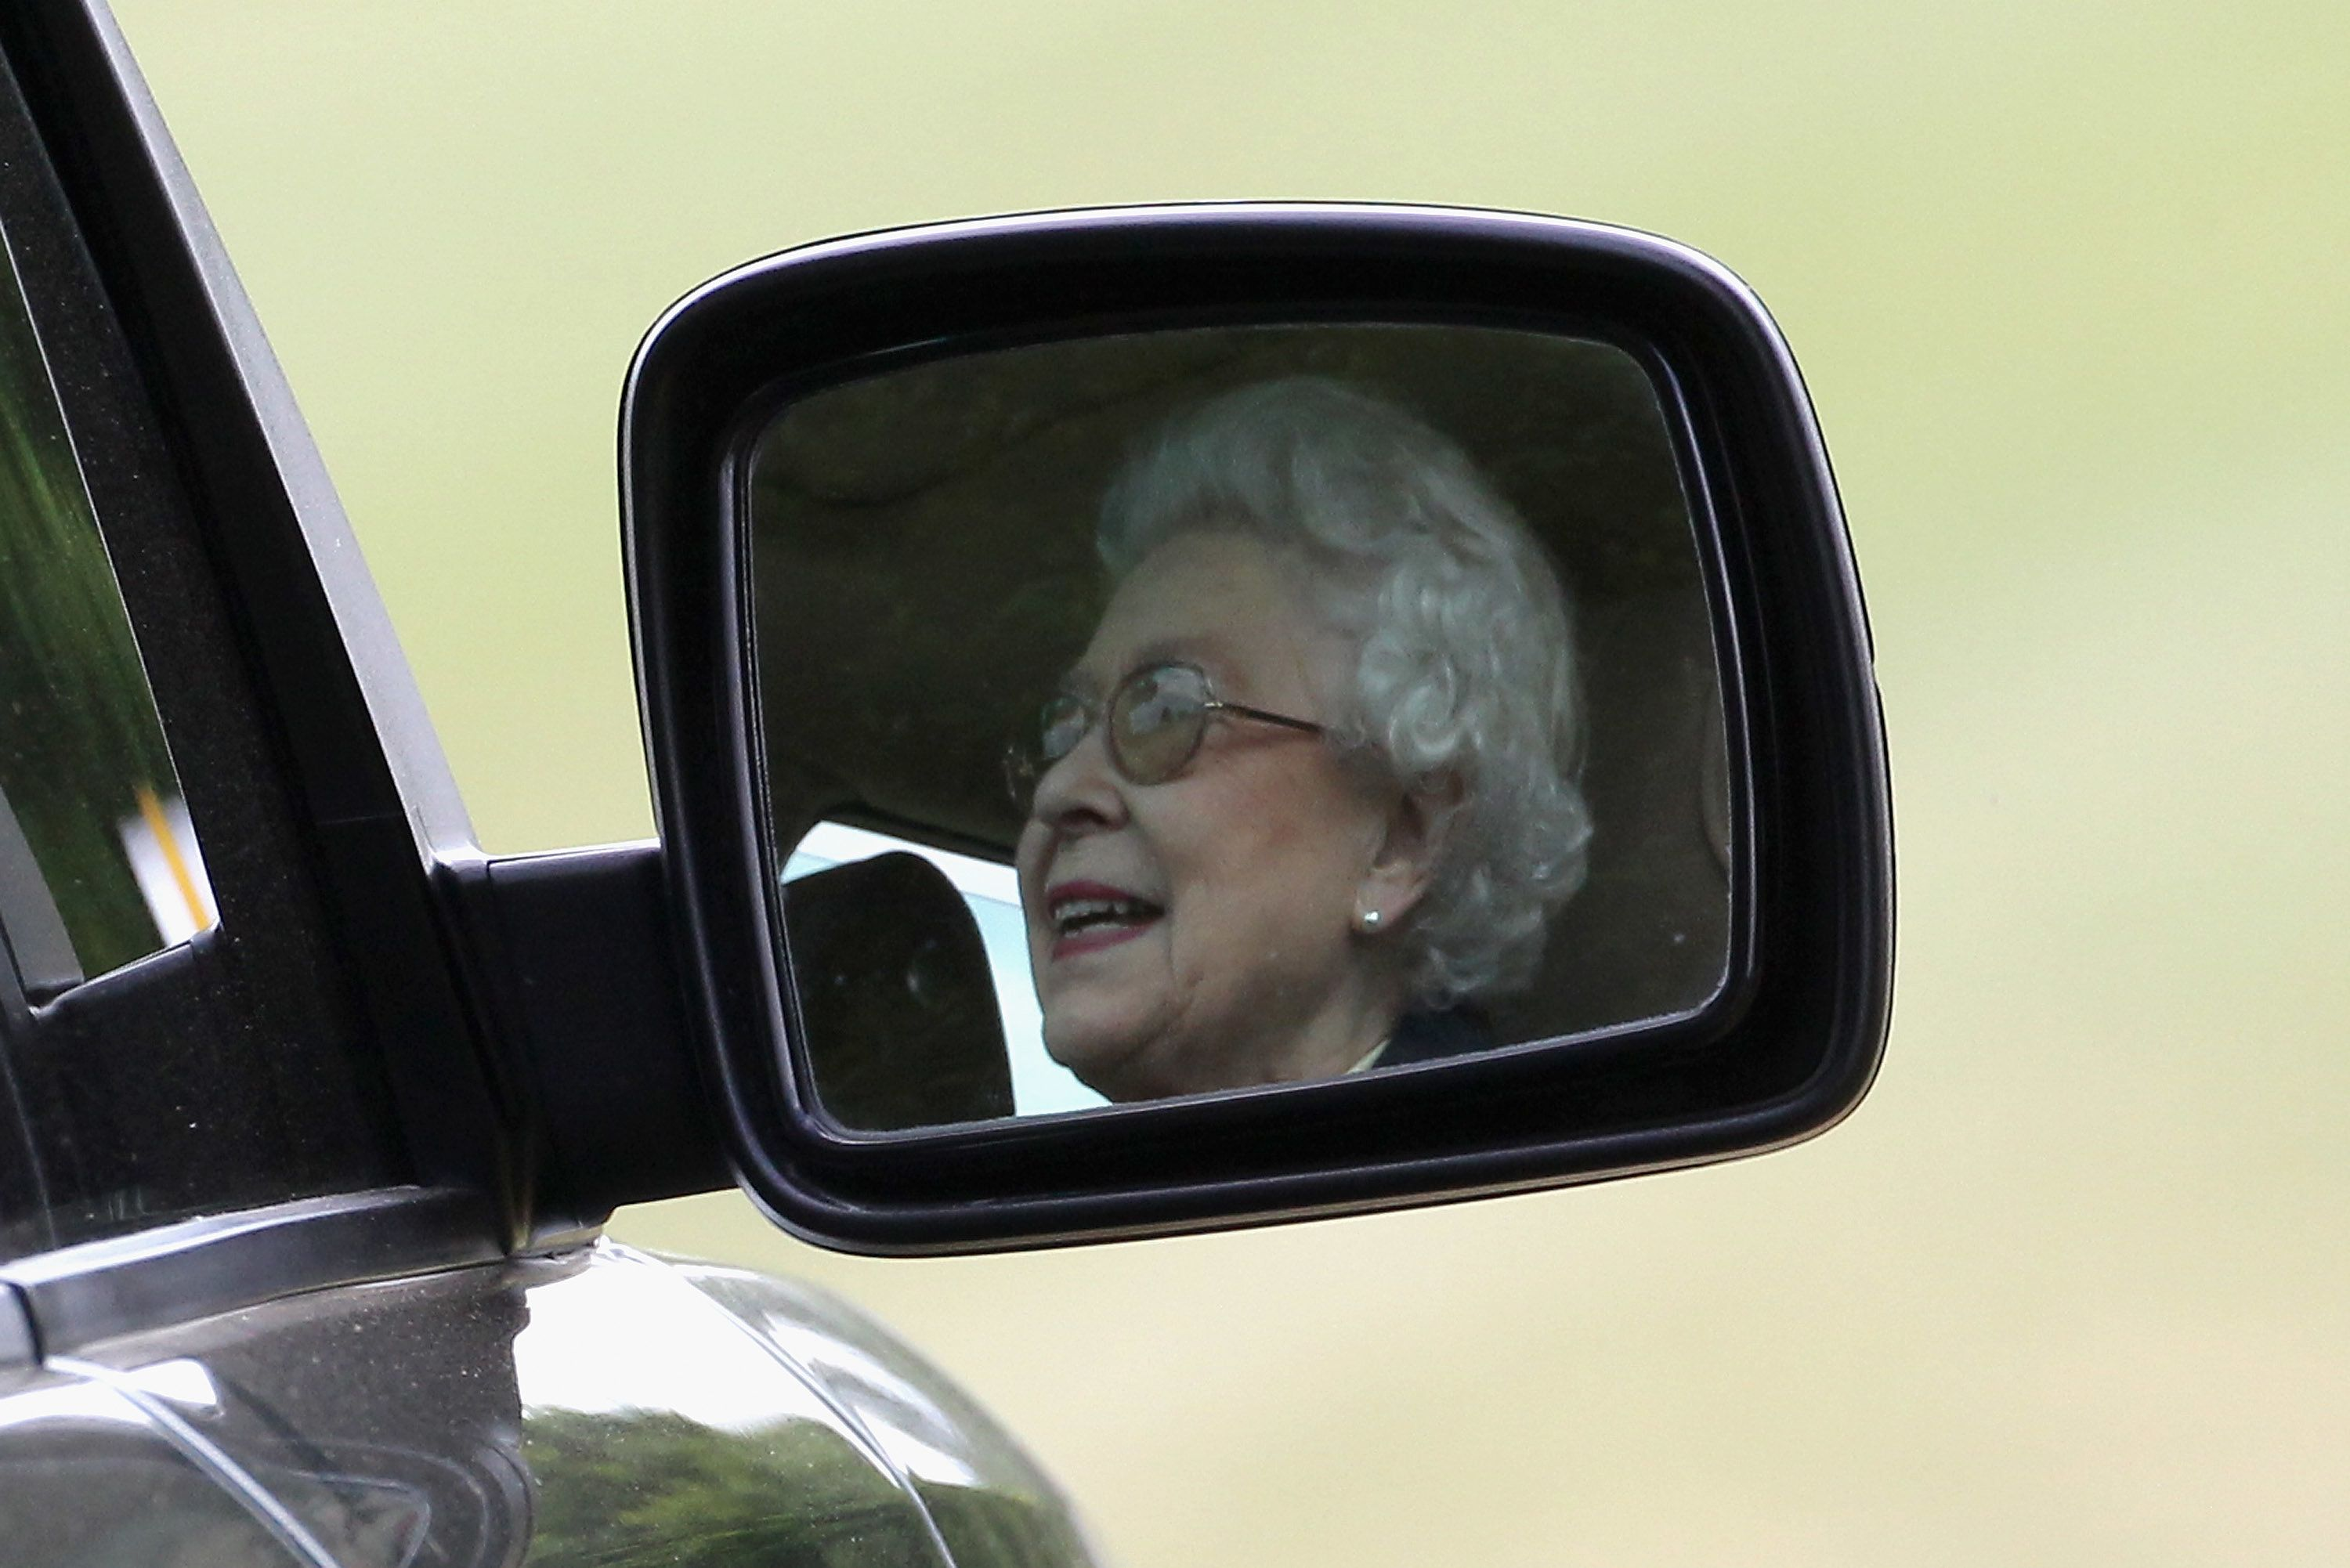 WINDSOR, ENGLAND - MAY 13:  Queen Elizabeth II drives her Range Rover as she attends Windsor Horse Show on May 12, 2011 in Windsor, England.  (Photo by Chris Jackson/Getty Images)